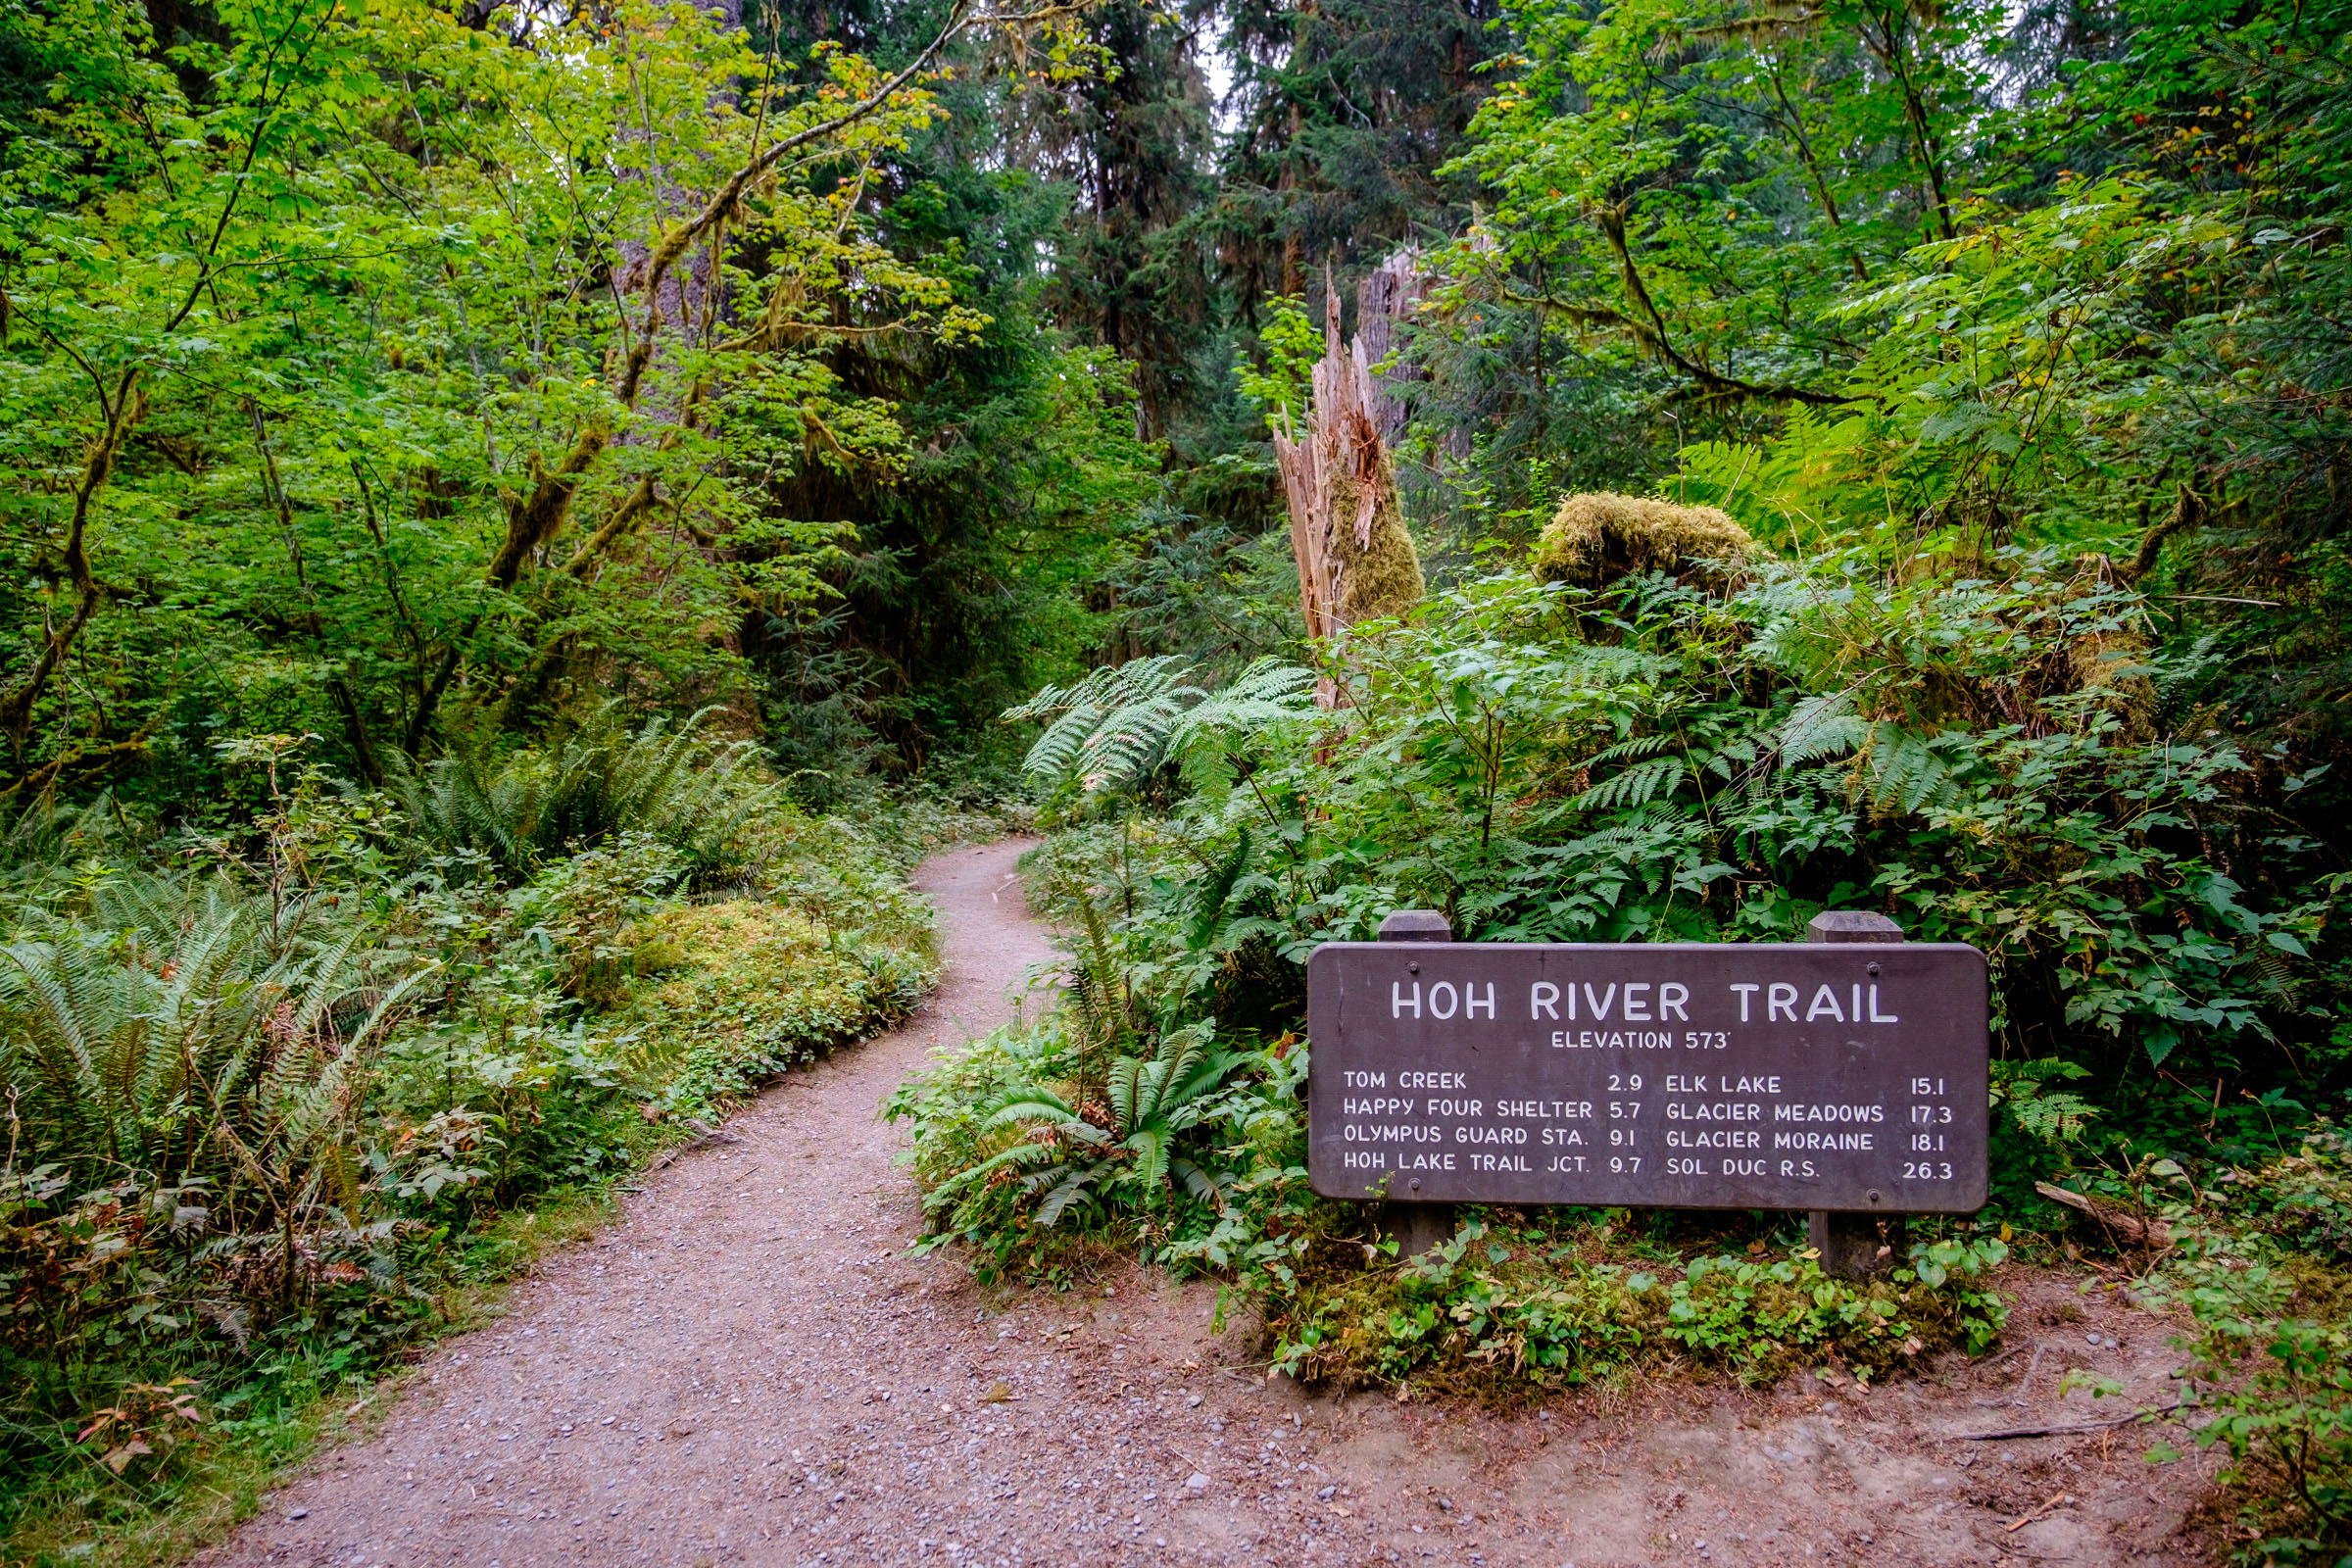 We hiked the Hoh River Trail....another amazing, but longer, hike.